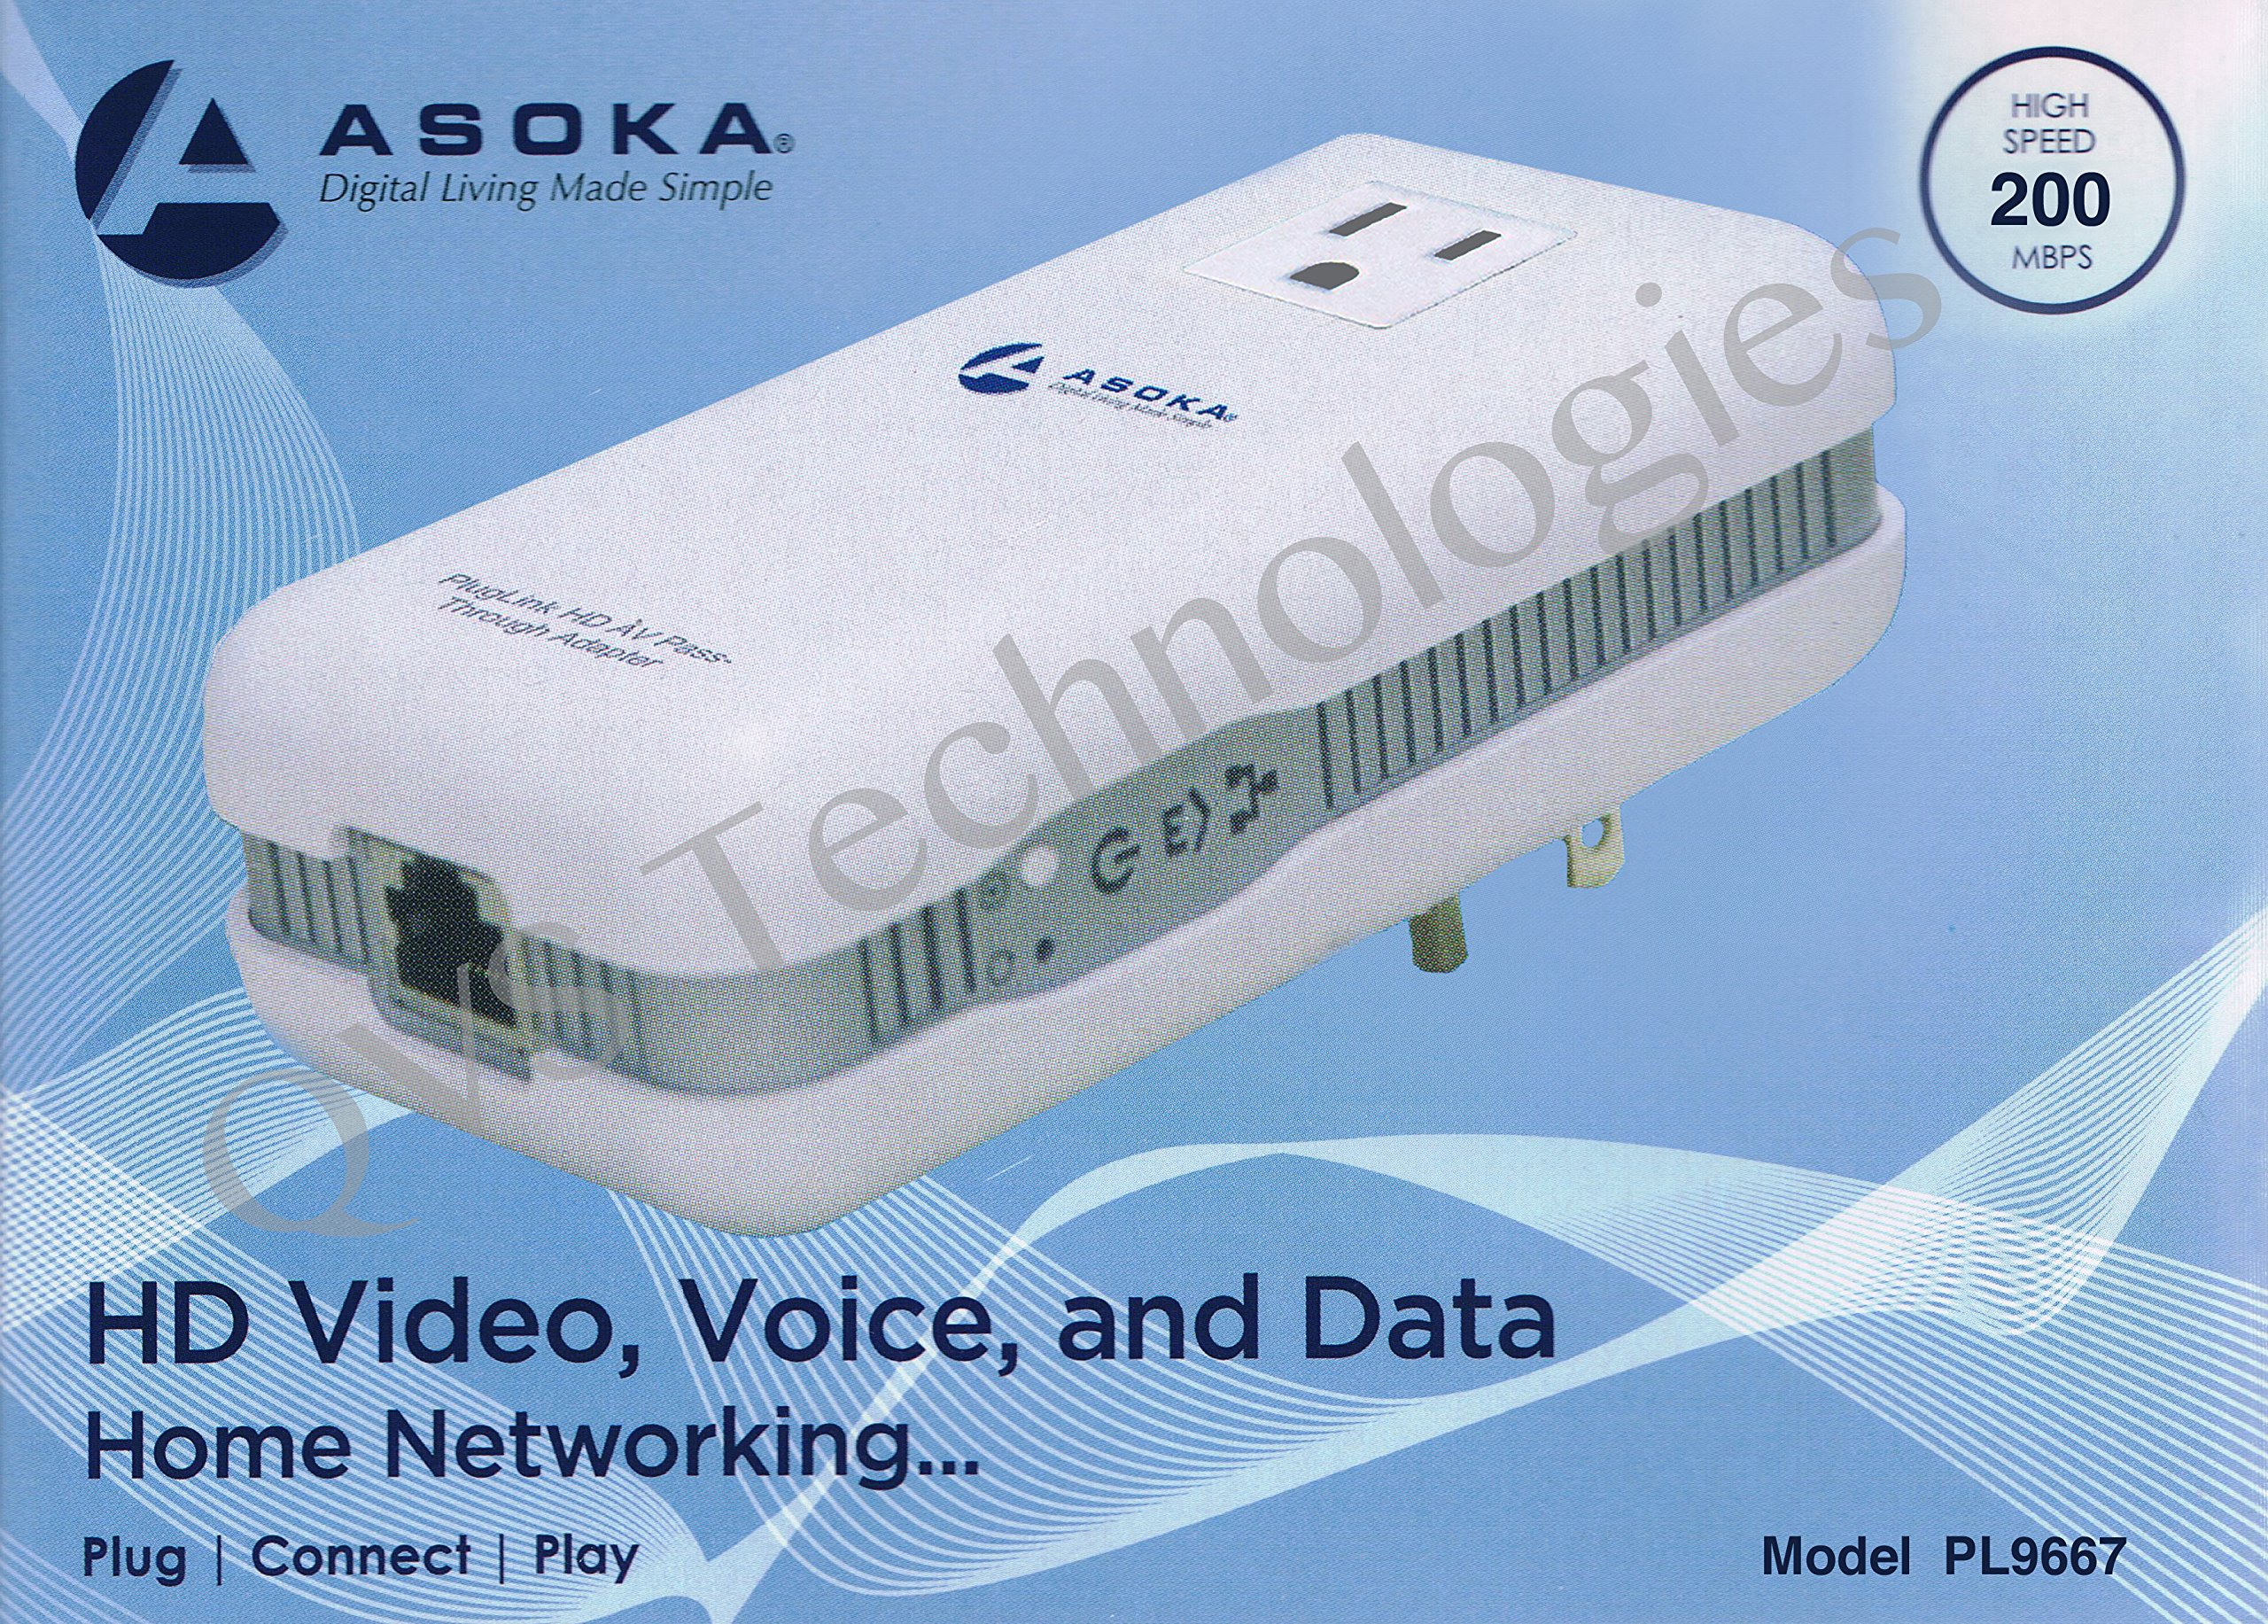 Asoka PlugLink ETH-200 Mbps HomePlug Powerline Ethernet Adapter - 9667 with Home Plug Passthrough